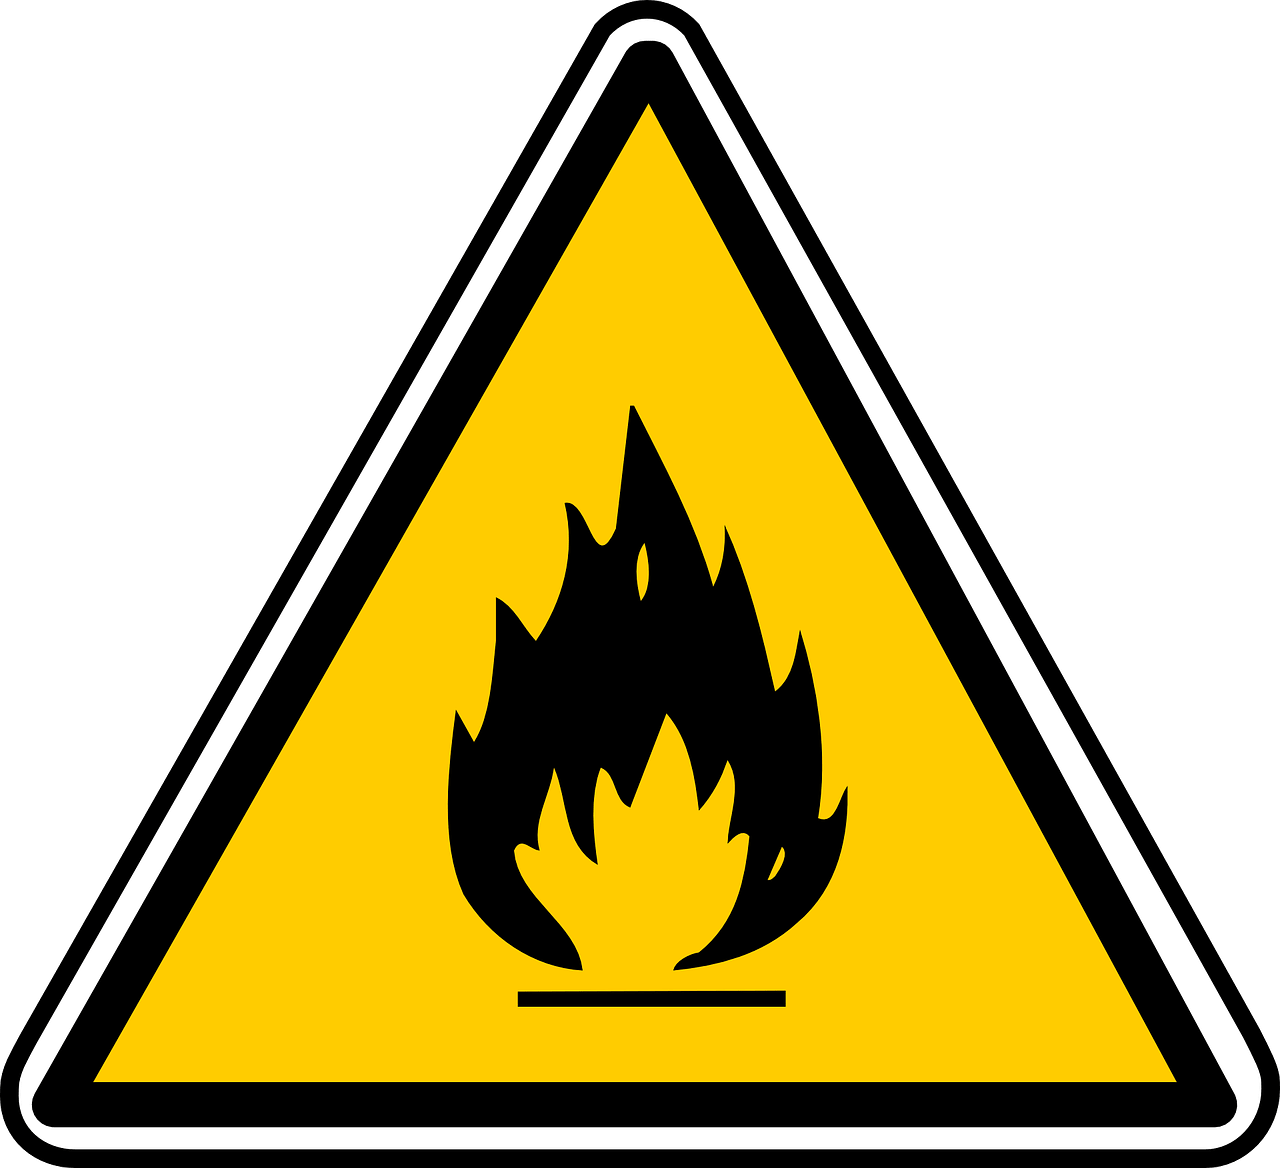 Requirements for Business Fire Inspections in Louisiana